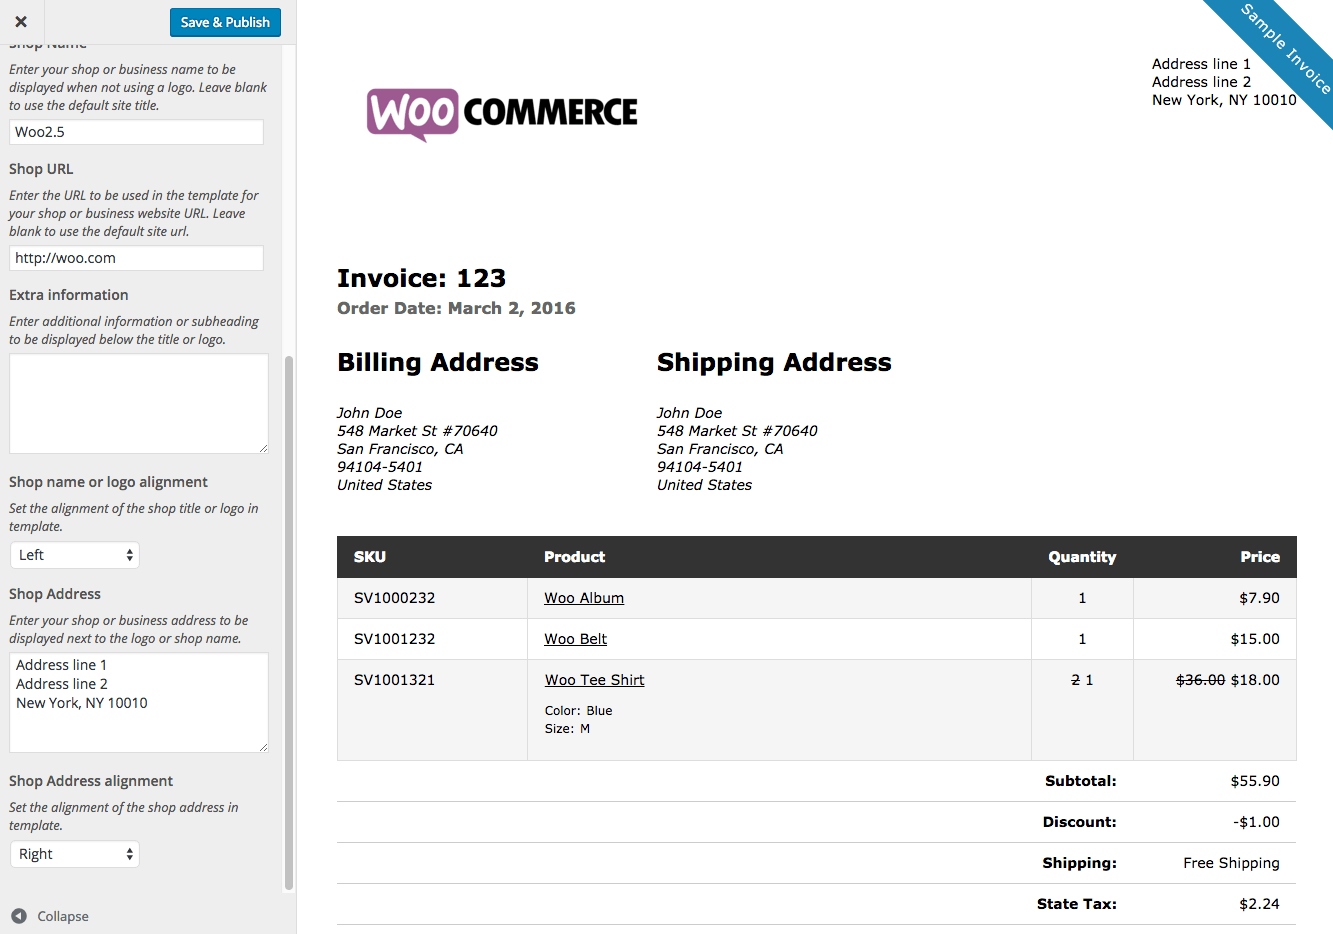 Patriotexpressus  Mesmerizing Woocommerce Print Invoices Amp Packing Lists  Woocommerce Docs With Hot Woocommerce Print Invoices  Packing Lists Customizer With Delightful Landlord Rent Receipt Also Receipt Scanner For Mac In Addition Wv Personal Property Tax Receipt And Dea Renewal Receipt As Well As Receipt Pads Additionally General Receipt From Docswoocommercecom With Patriotexpressus  Hot Woocommerce Print Invoices Amp Packing Lists  Woocommerce Docs With Delightful Woocommerce Print Invoices  Packing Lists Customizer And Mesmerizing Landlord Rent Receipt Also Receipt Scanner For Mac In Addition Wv Personal Property Tax Receipt From Docswoocommercecom